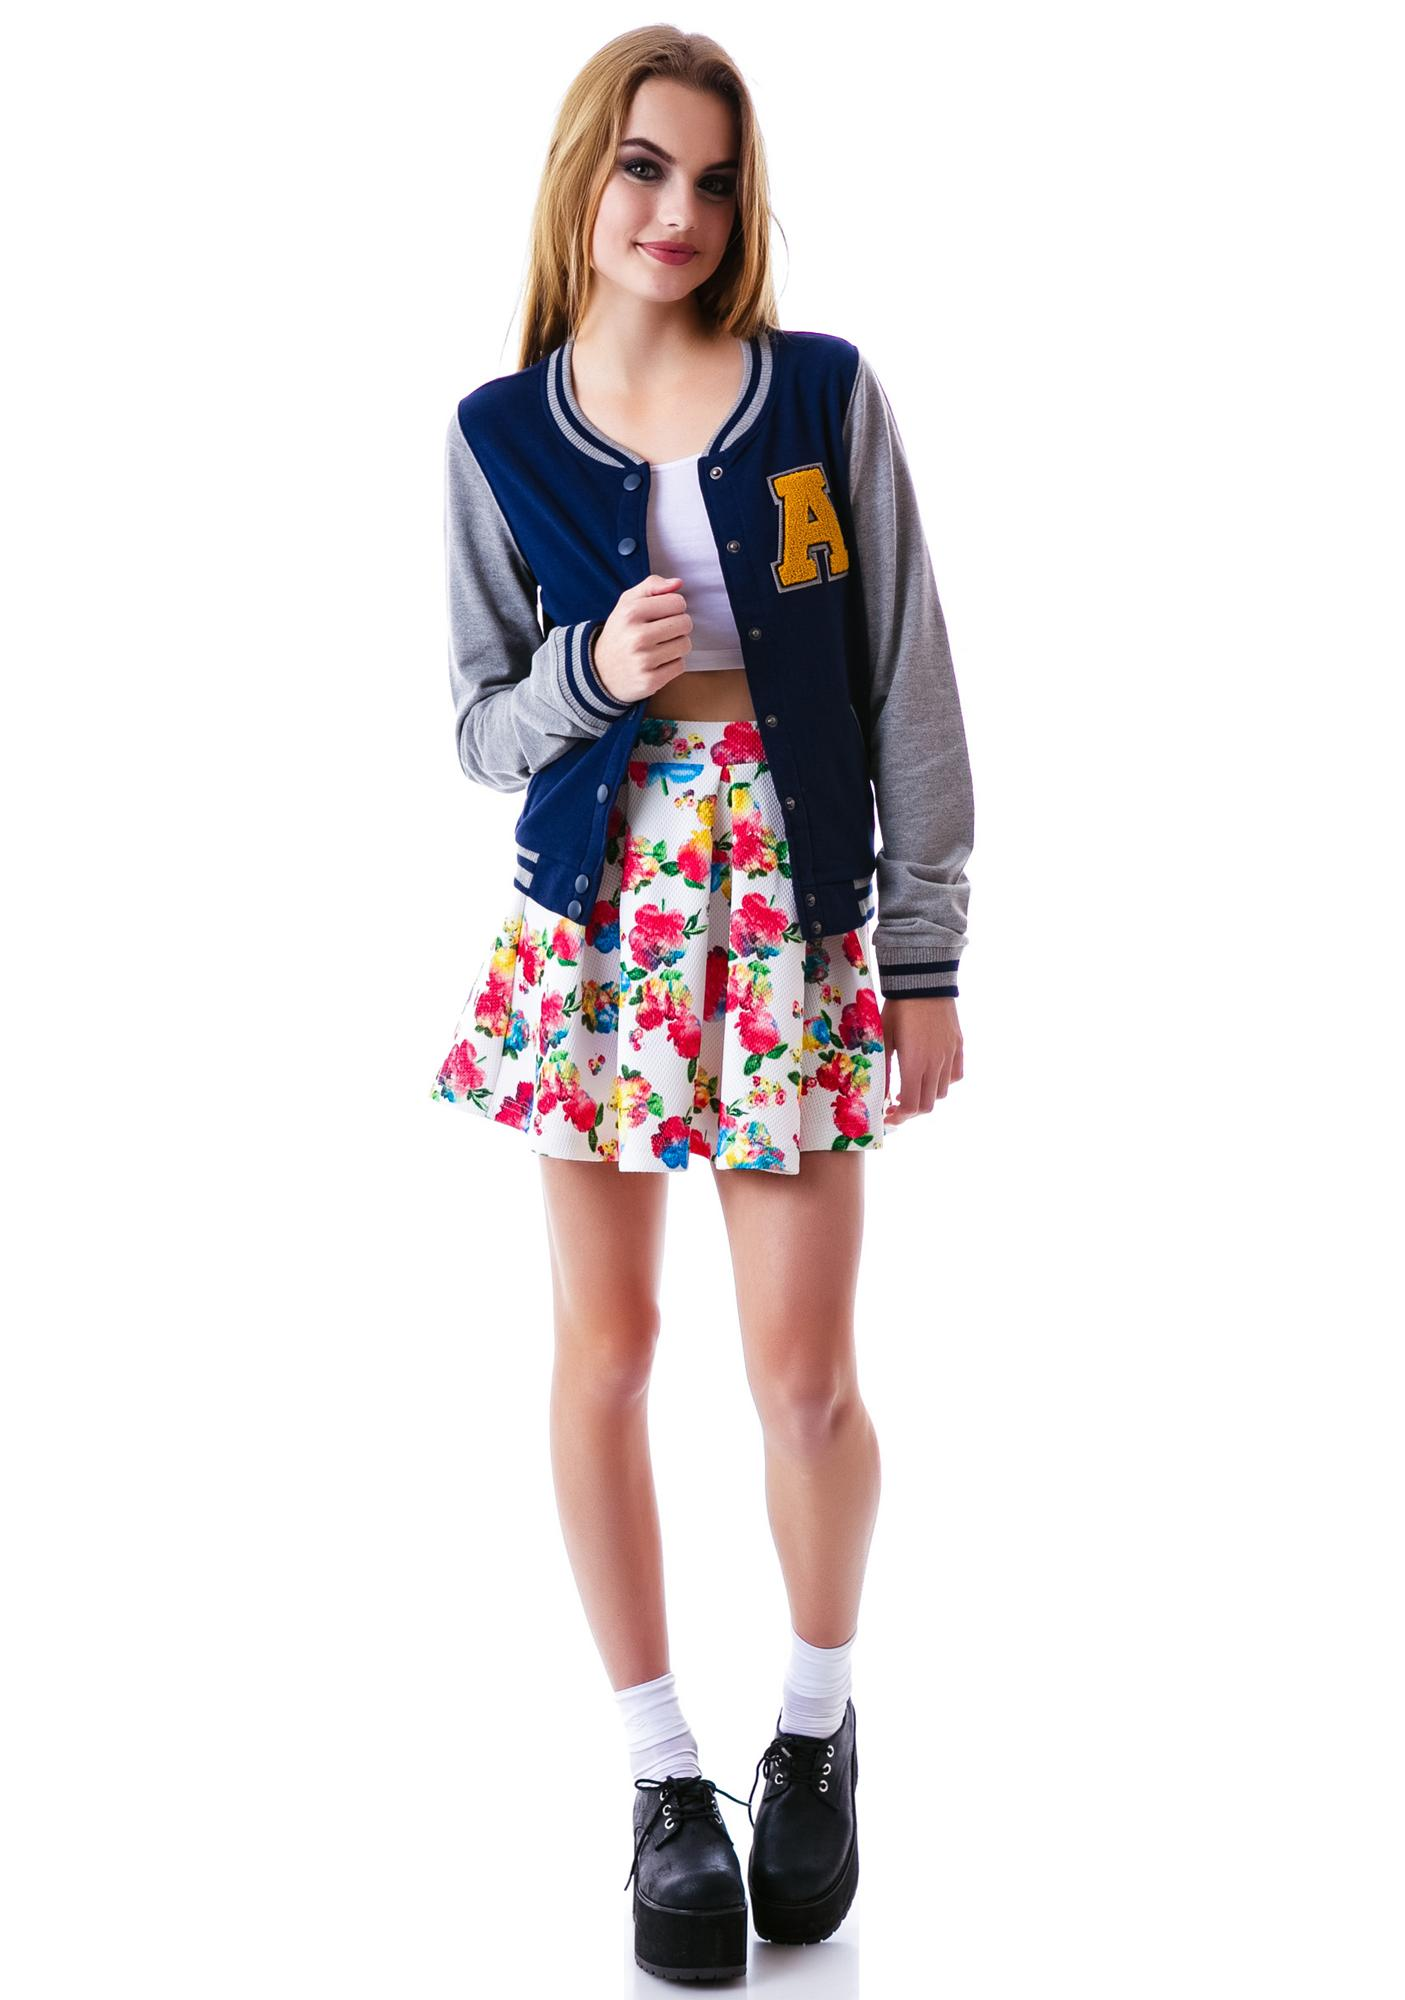 A Team Varisty Bomber Jacket